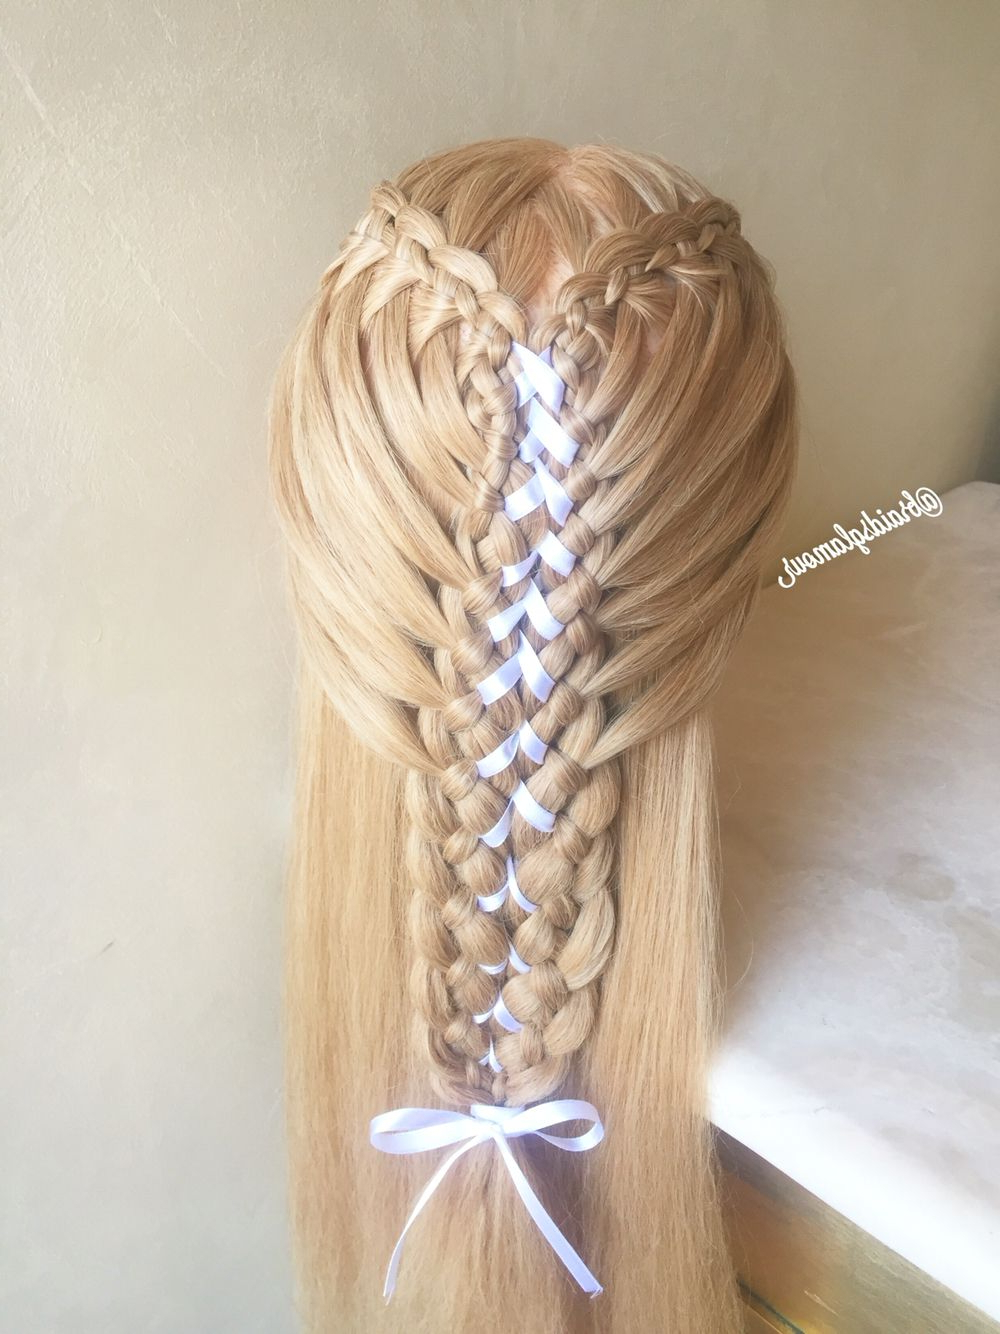 2020 Corset Braid Hairstyles Inside Four Strand Waterfall Braids Into Corset Braid (View 10 of 20)